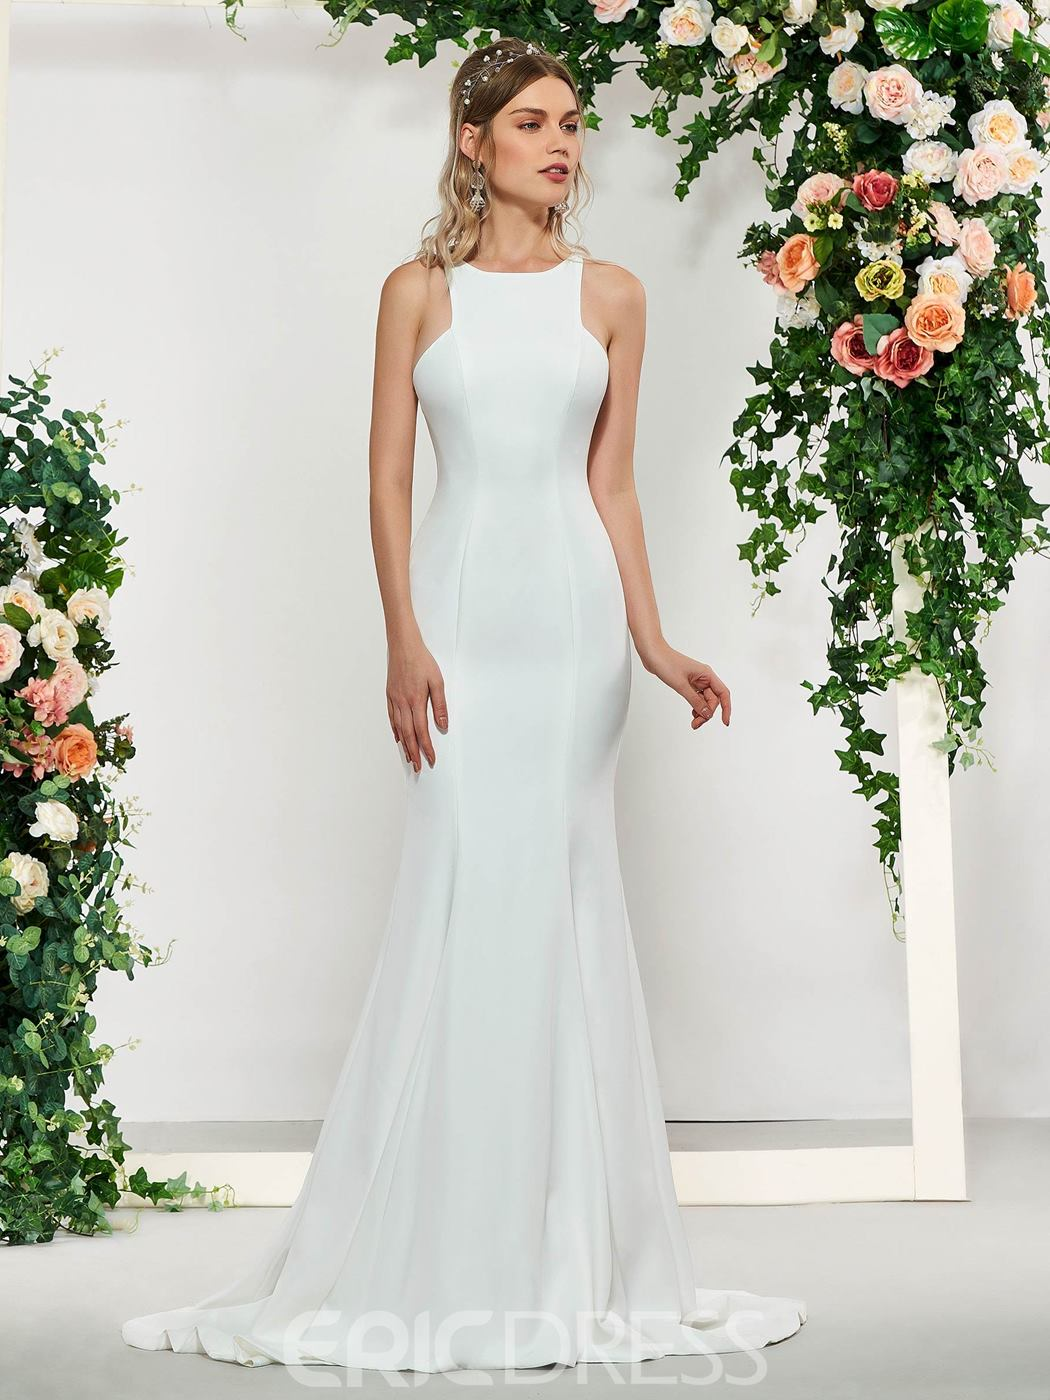 Ericdress Simple Mermaid Wedding Dress with Train